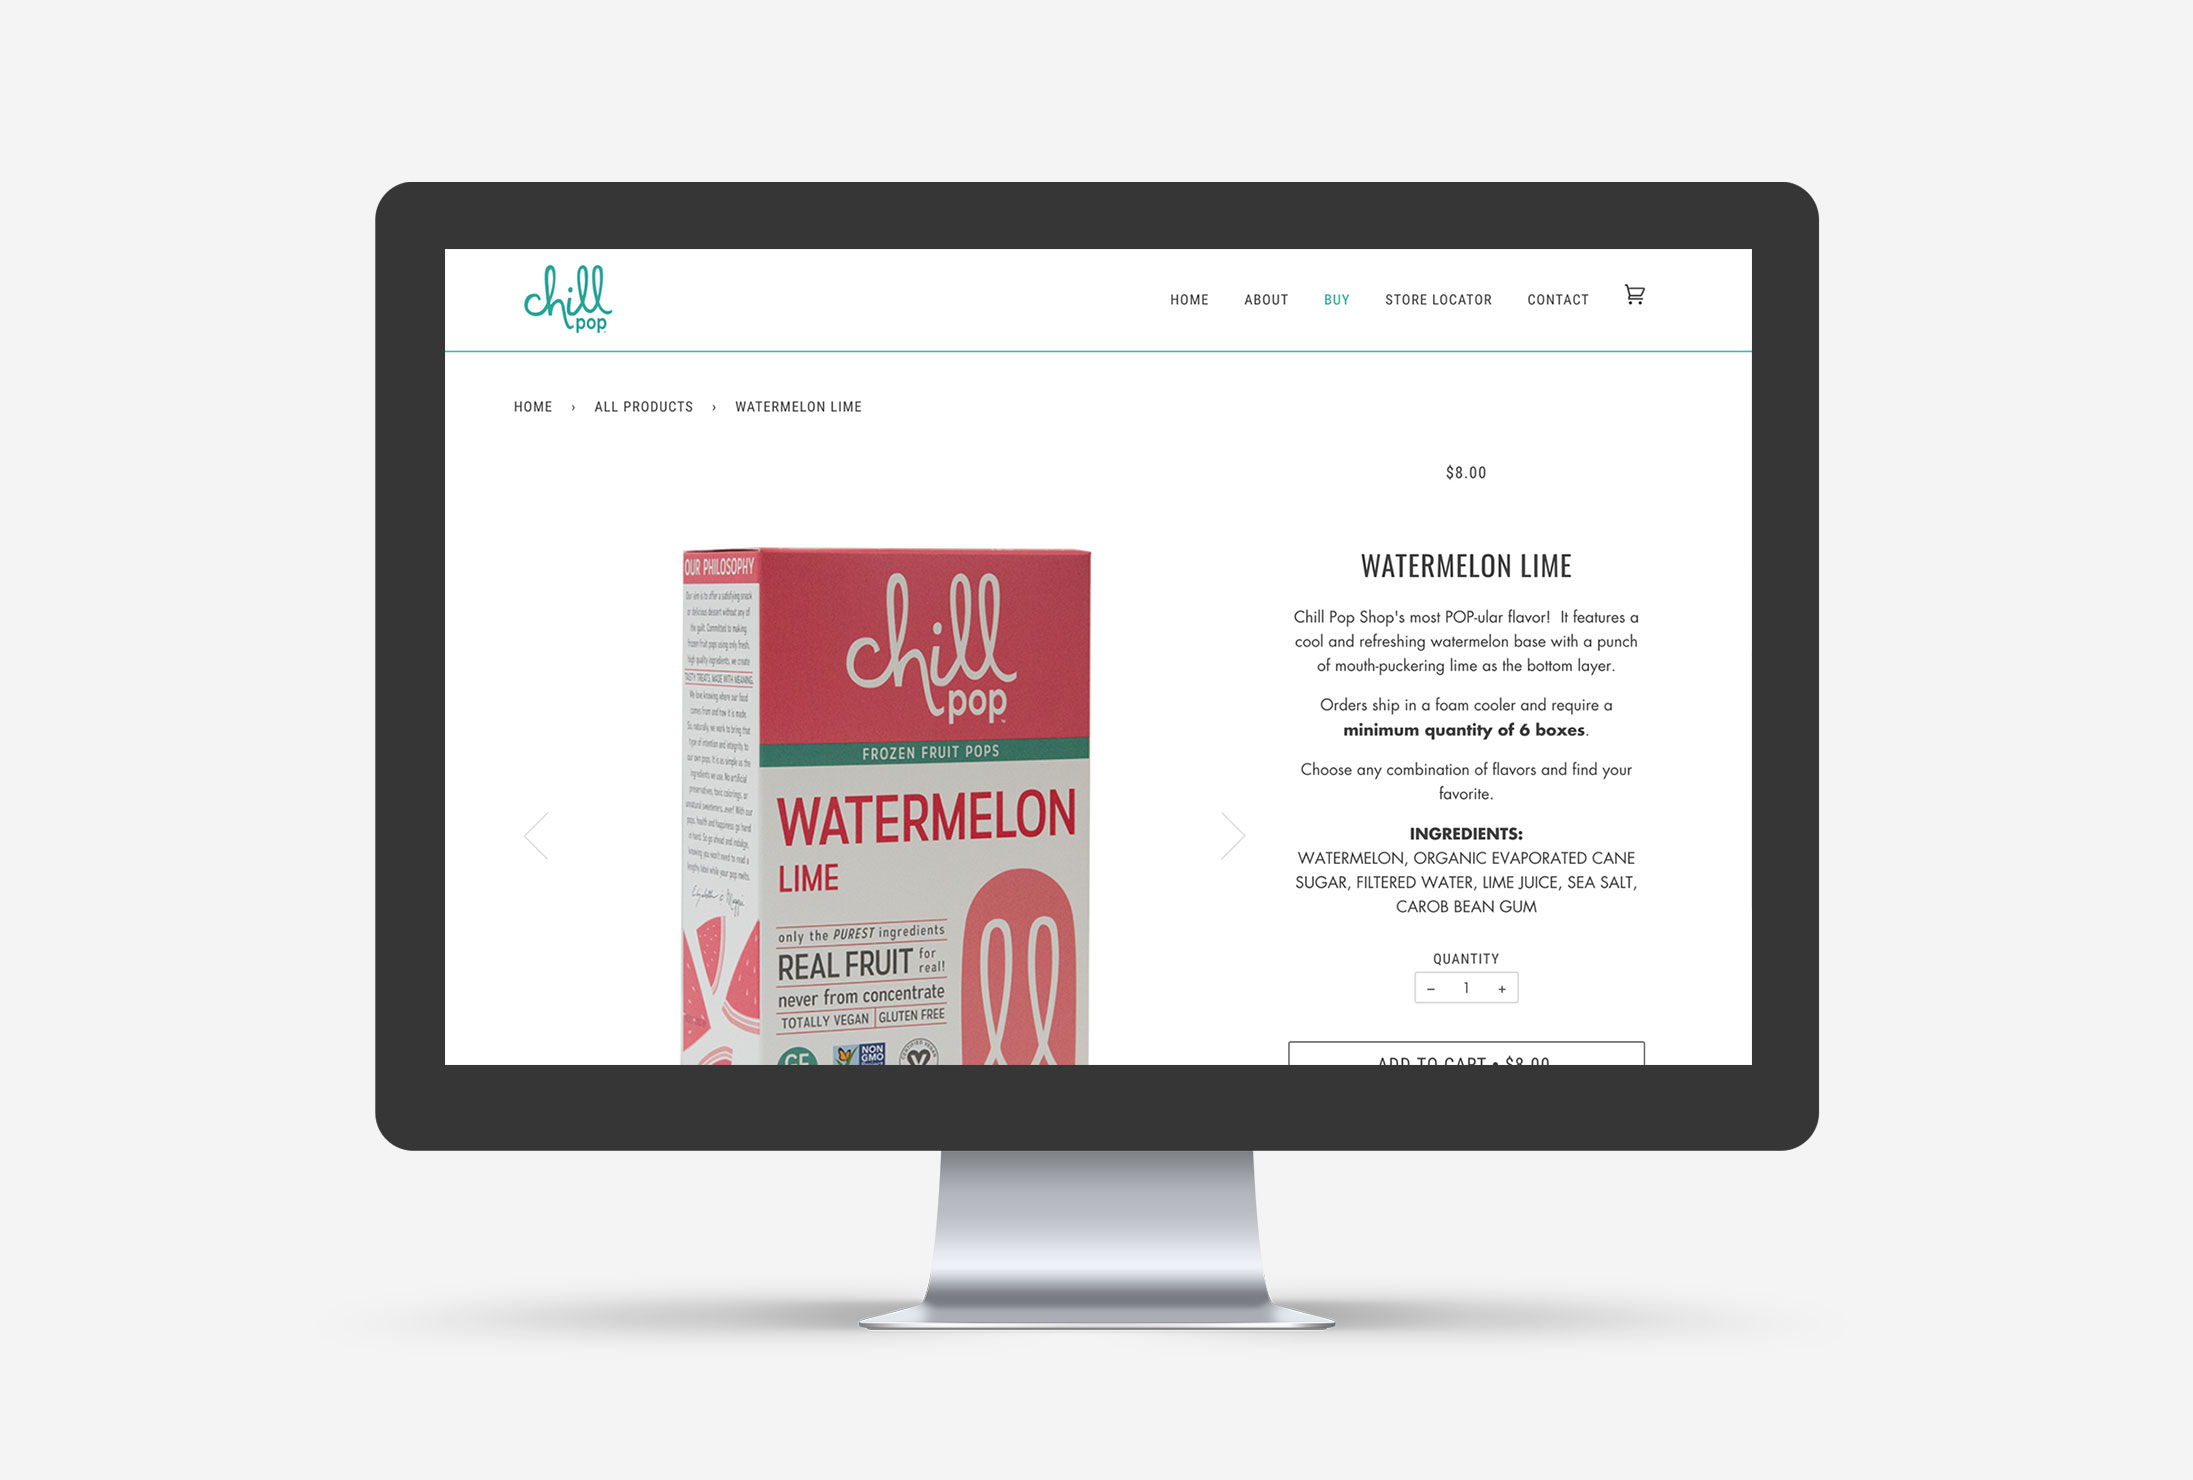 Chill Pop Shop Cleveland Shopify Web Design